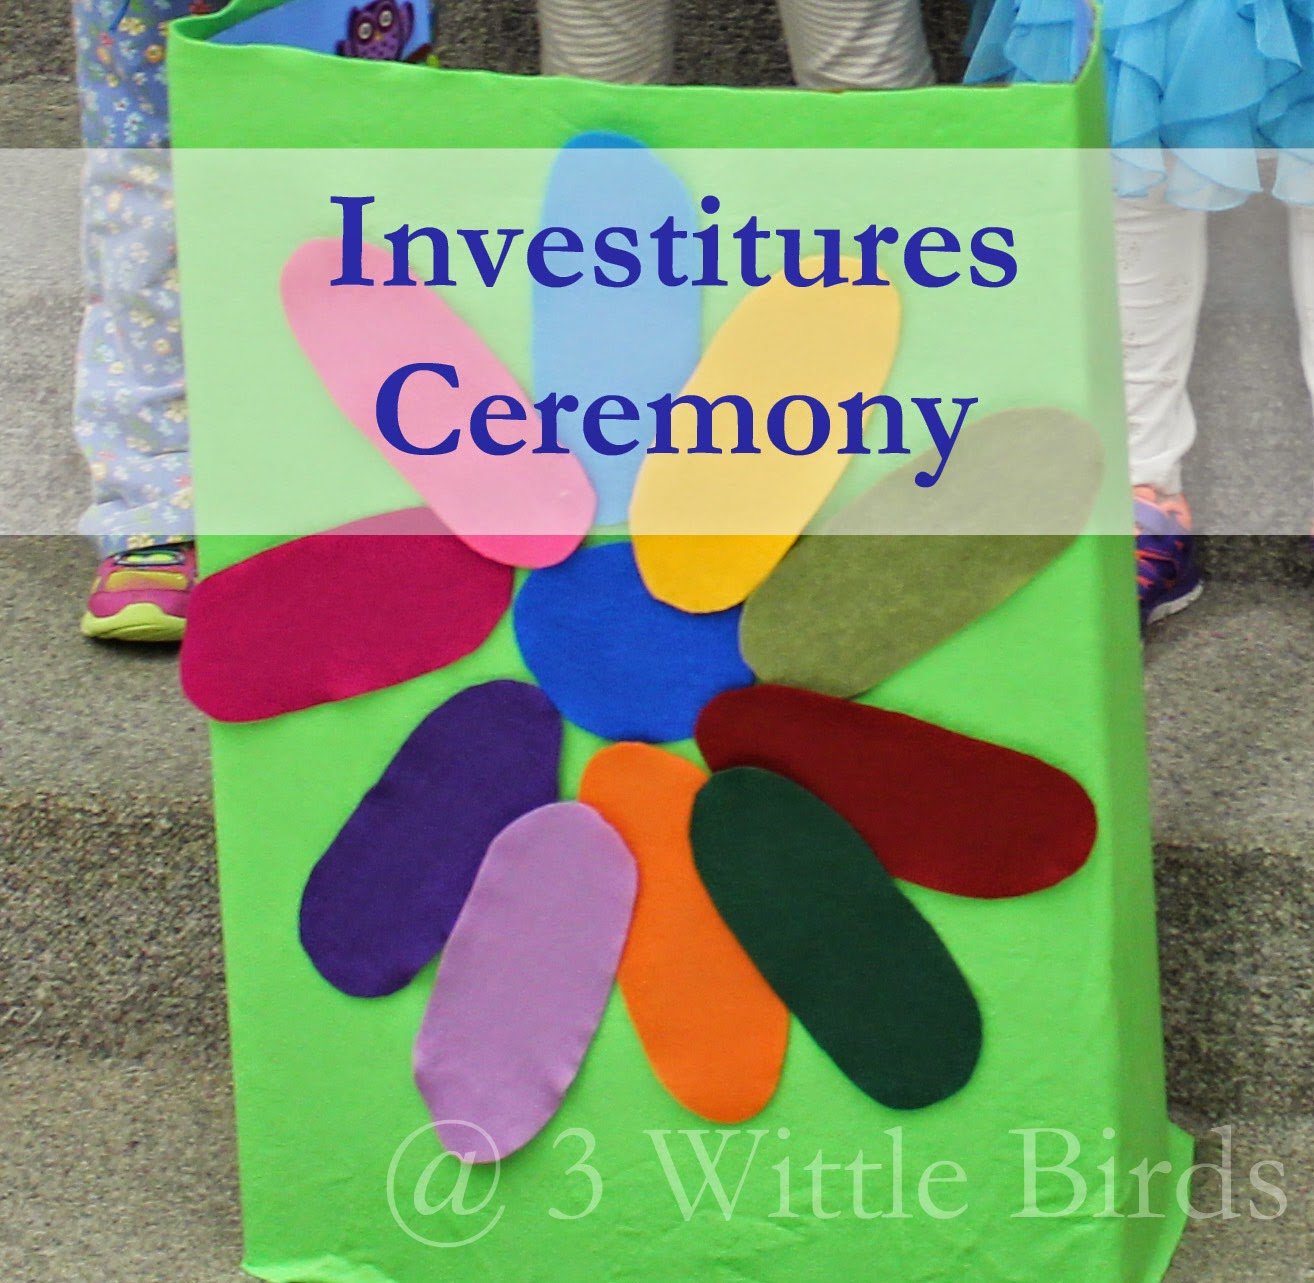 3 Wittle Birds: Investitures Ceremony - Girl Scout Daisy